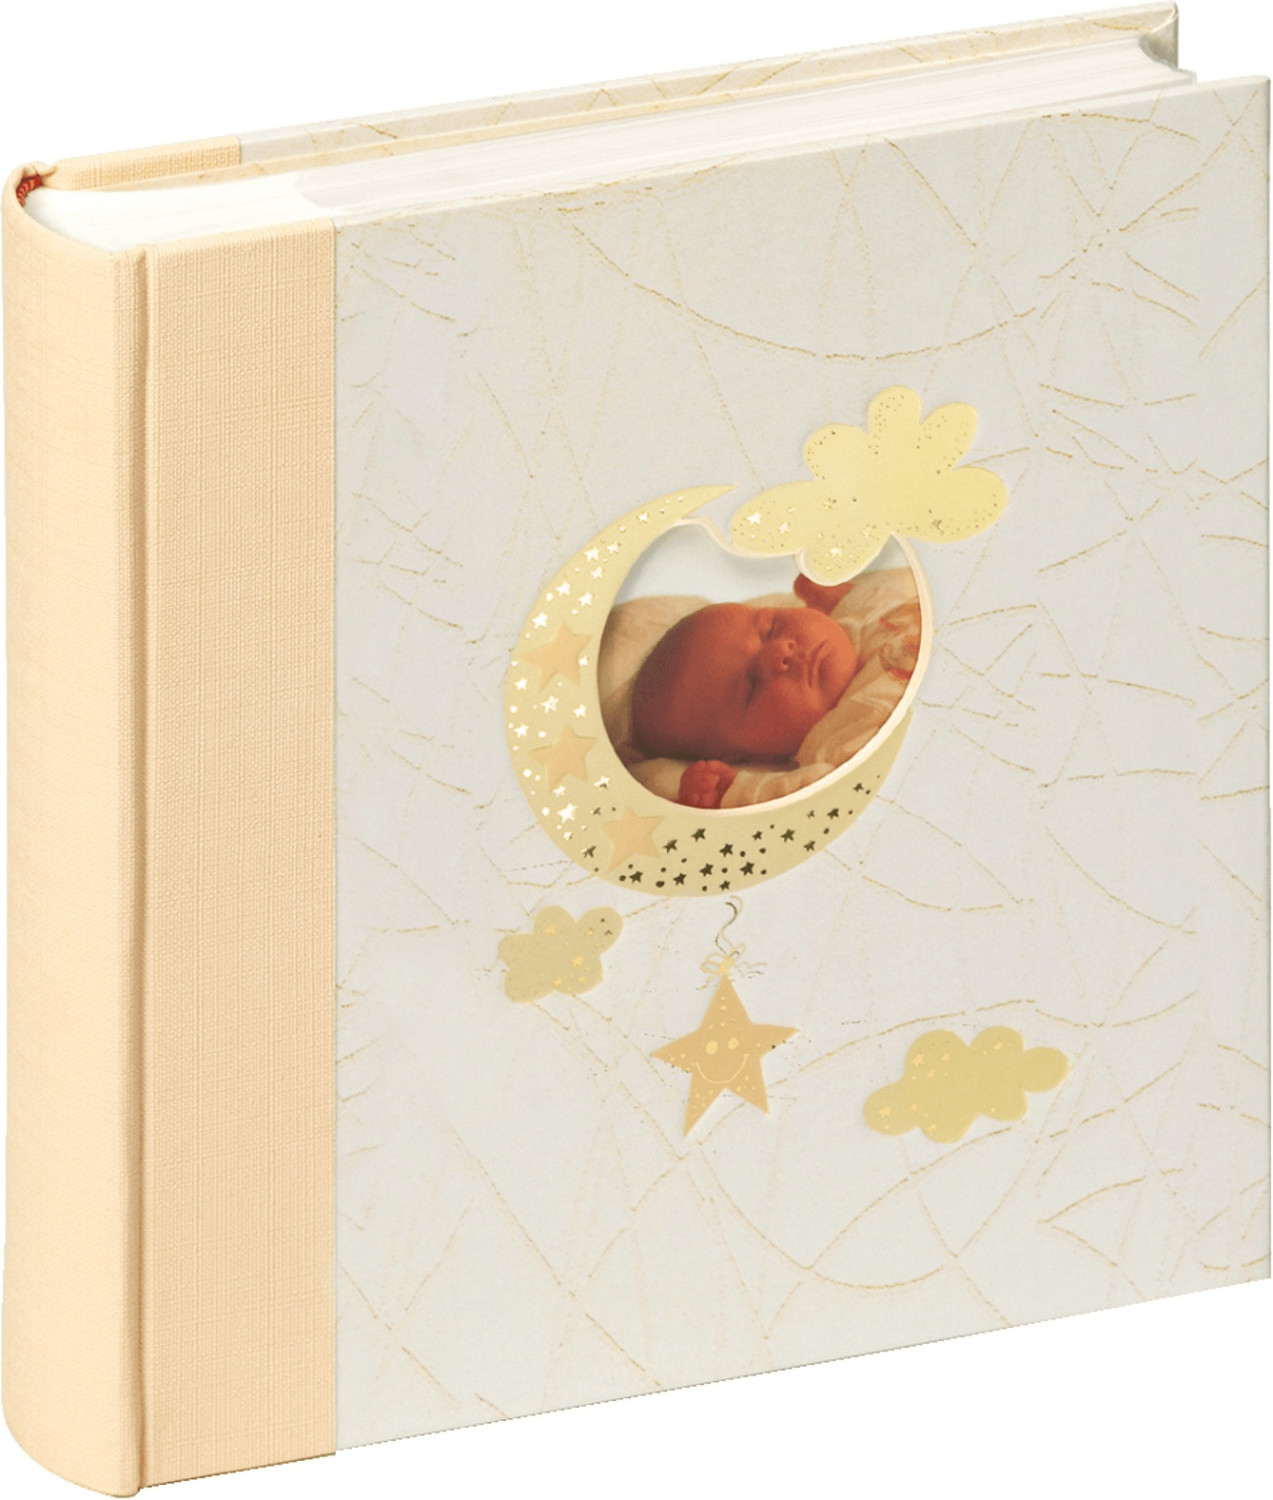 Image of walther design Bambini Baby Album 10x15/200